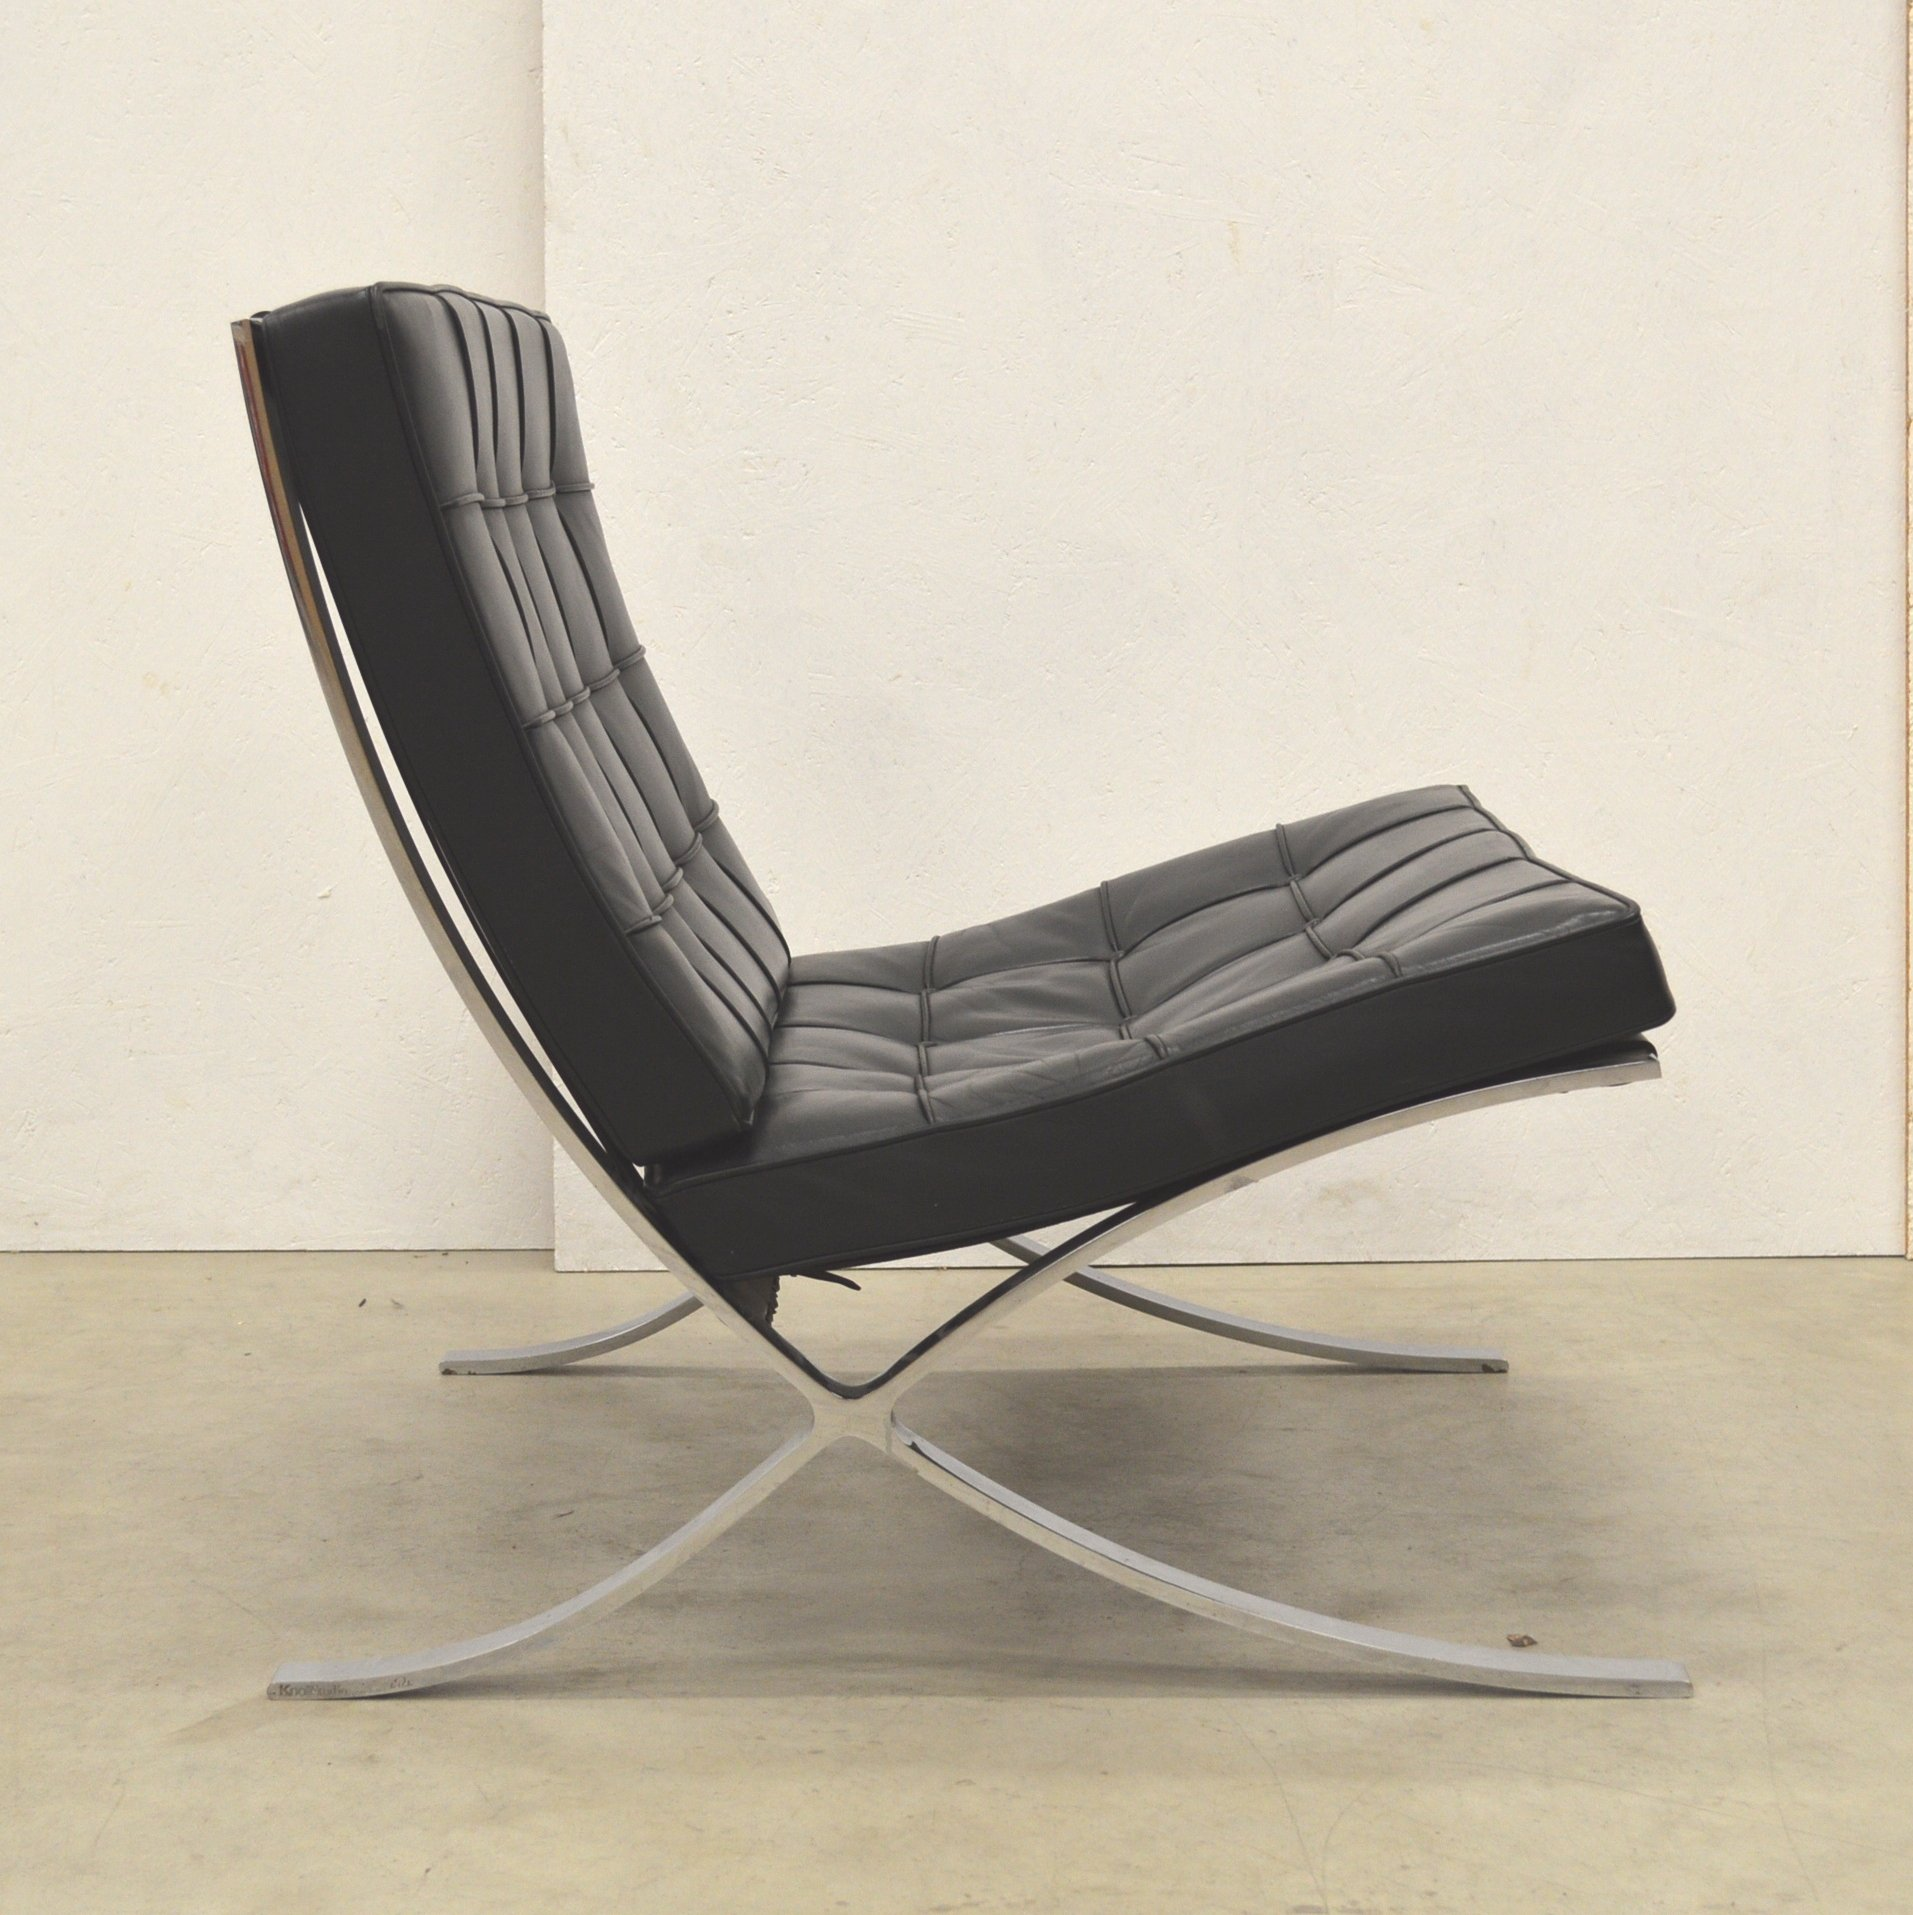 Barcelona Lounge Chair from the eighties by Ludwig Mies van der Rohe for Knol